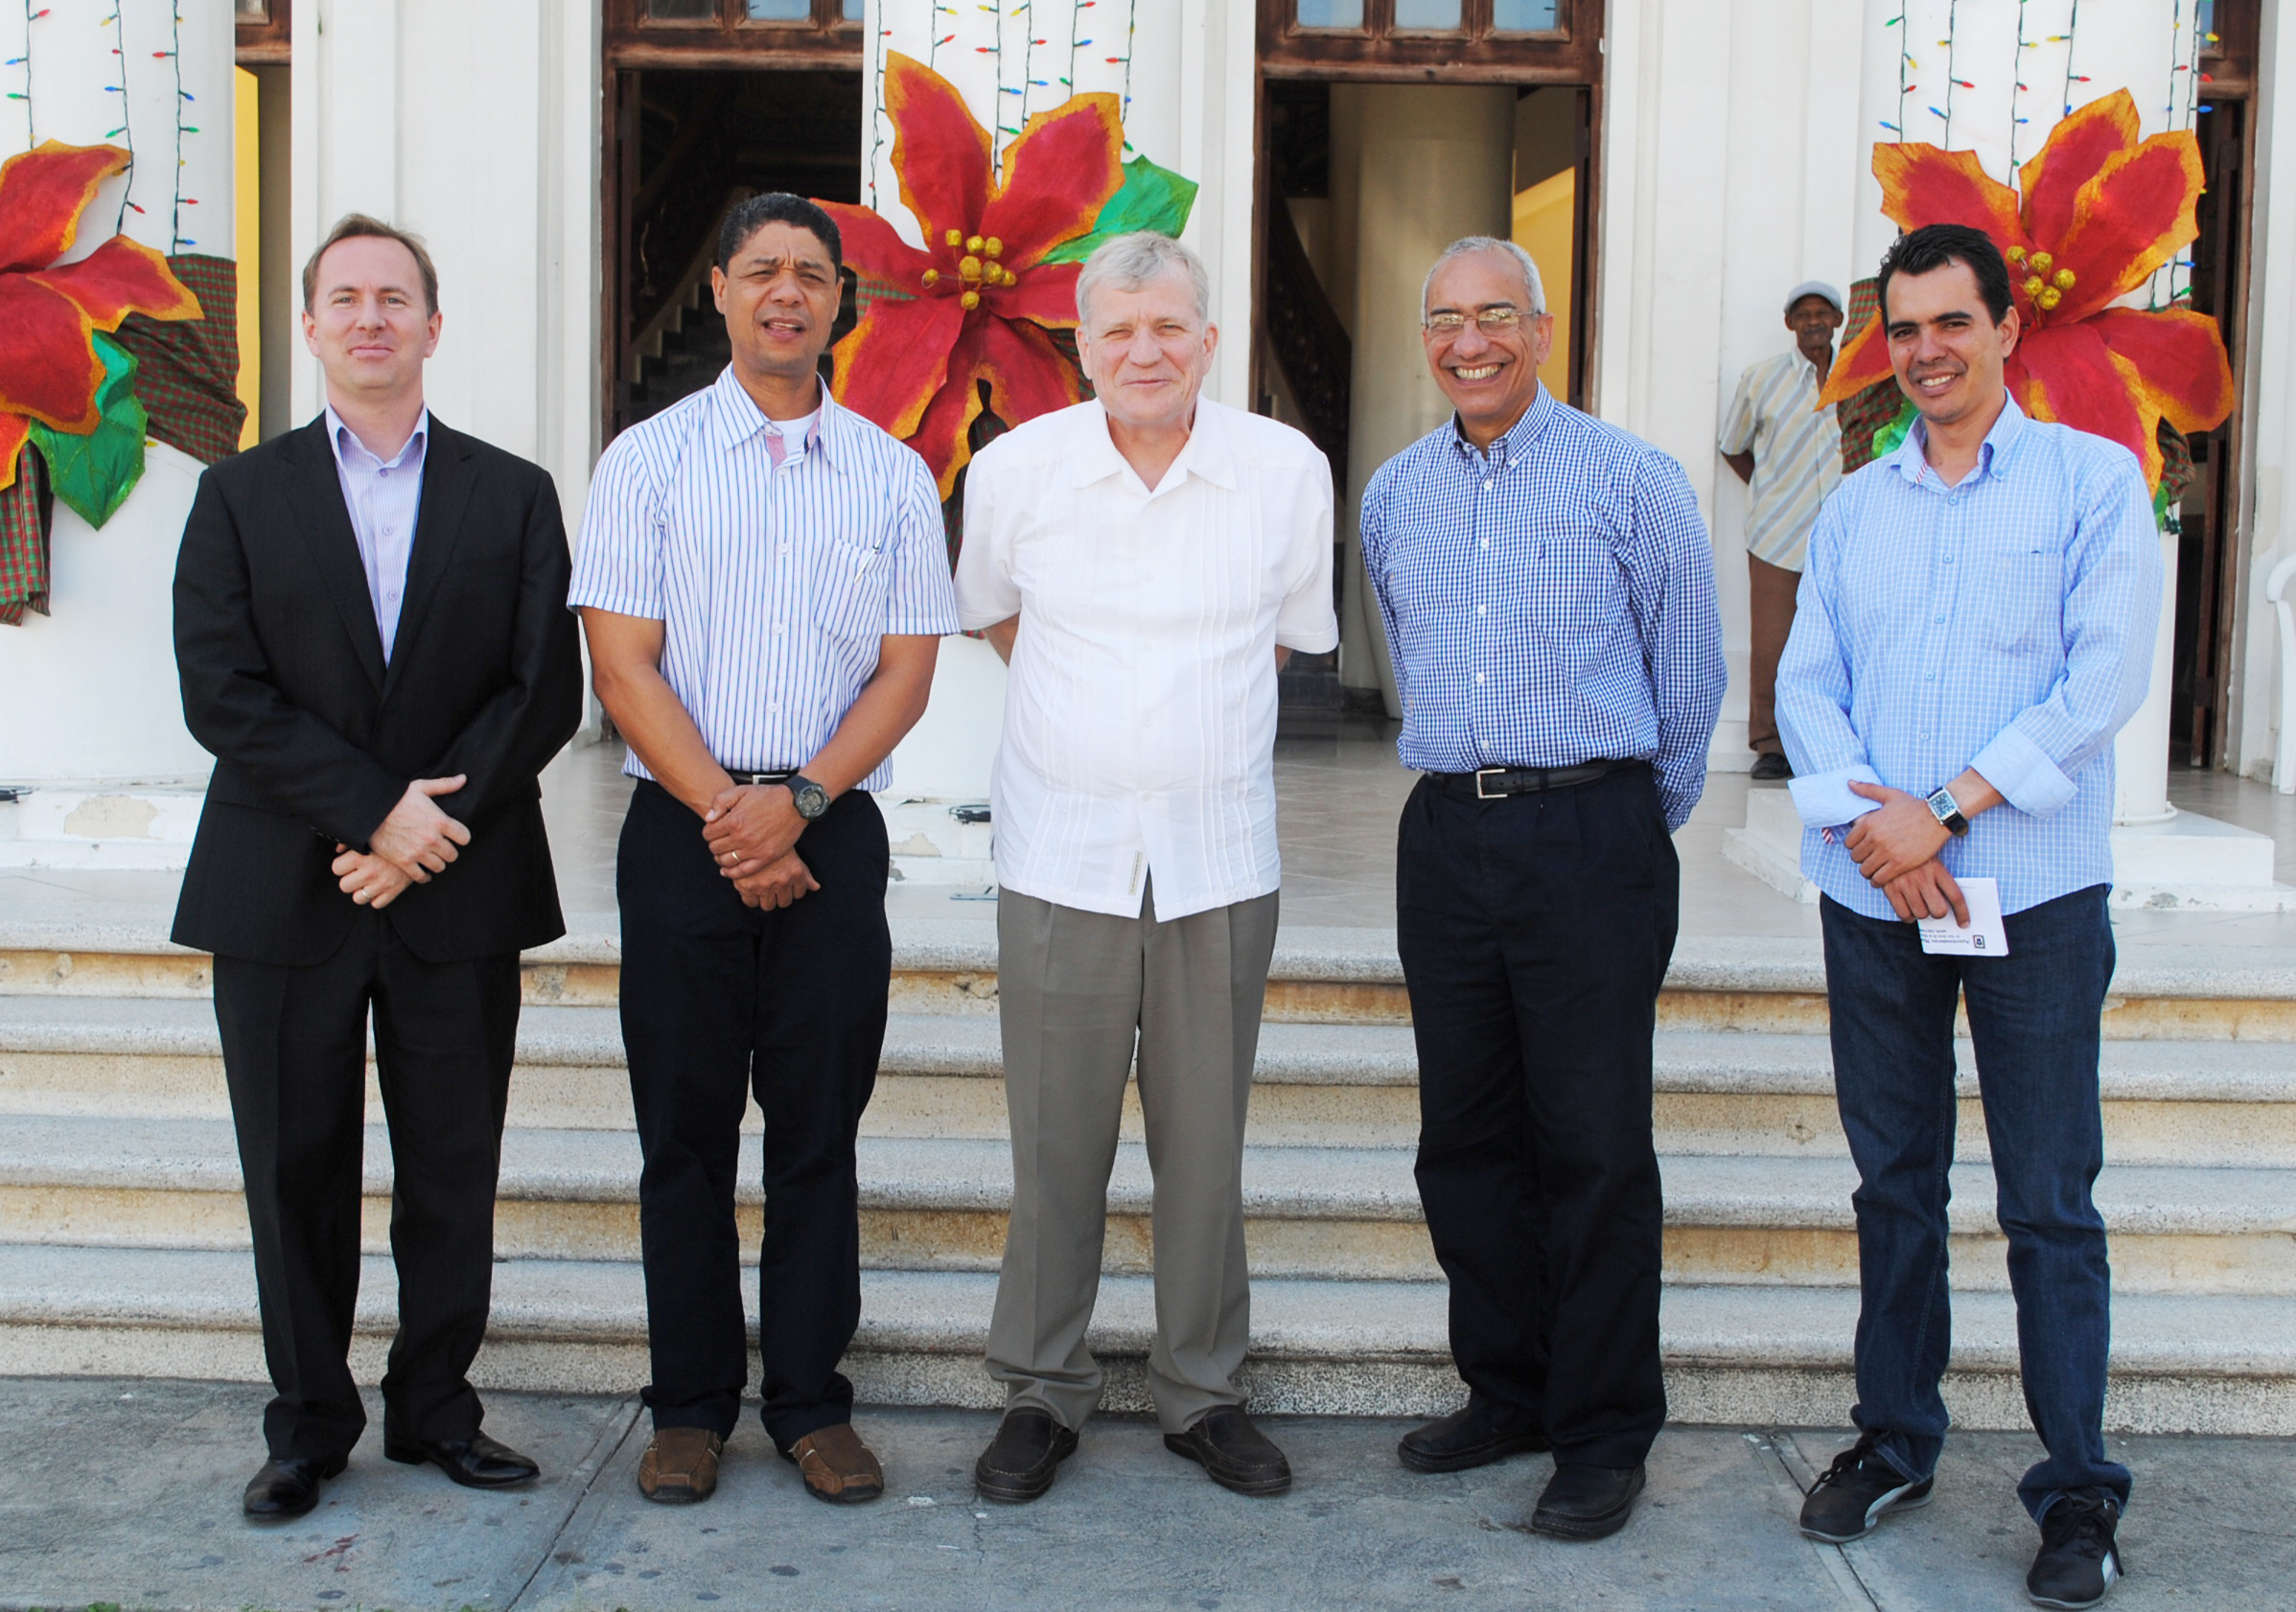 Canadian Representatives in the DR, Counsellor Aladin Legault & Ambassador Georges Boisse with GQC Representative Felix Mercedes, Julio Espaillat & Eduardo Ramirez at San Juan De La Maguana City Hall during their visit to the Project